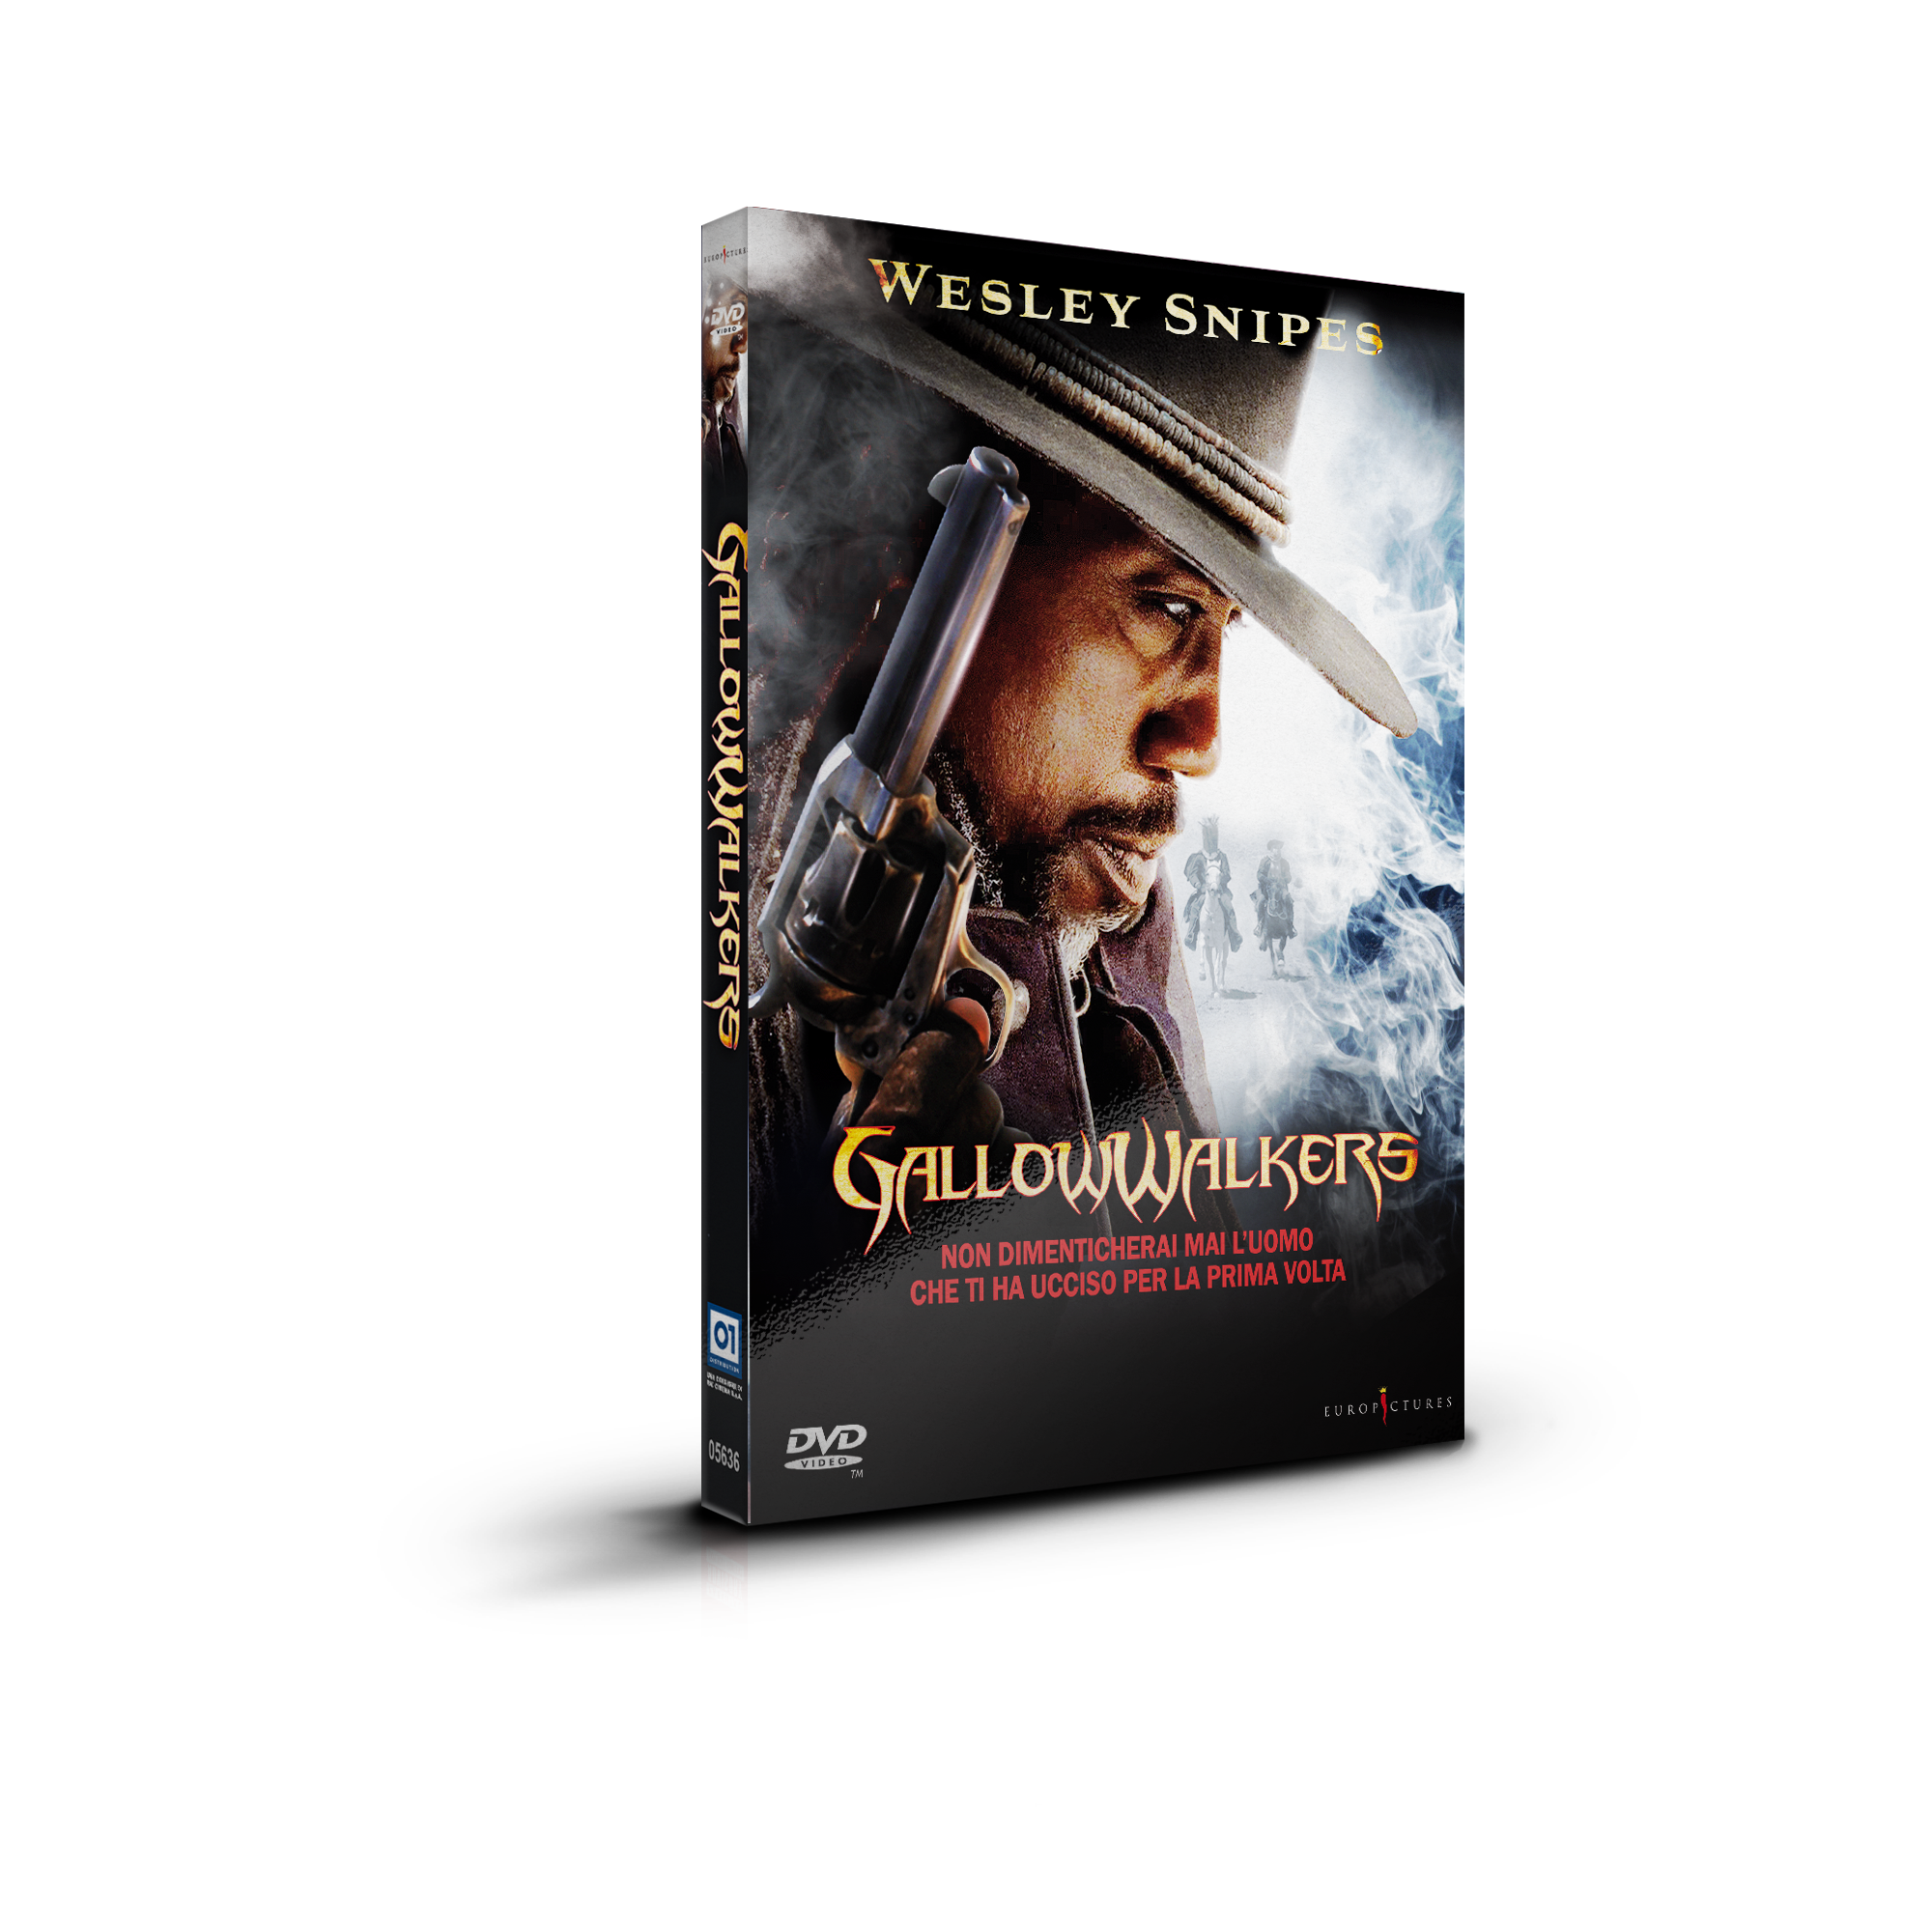 gallowwalkers home_video